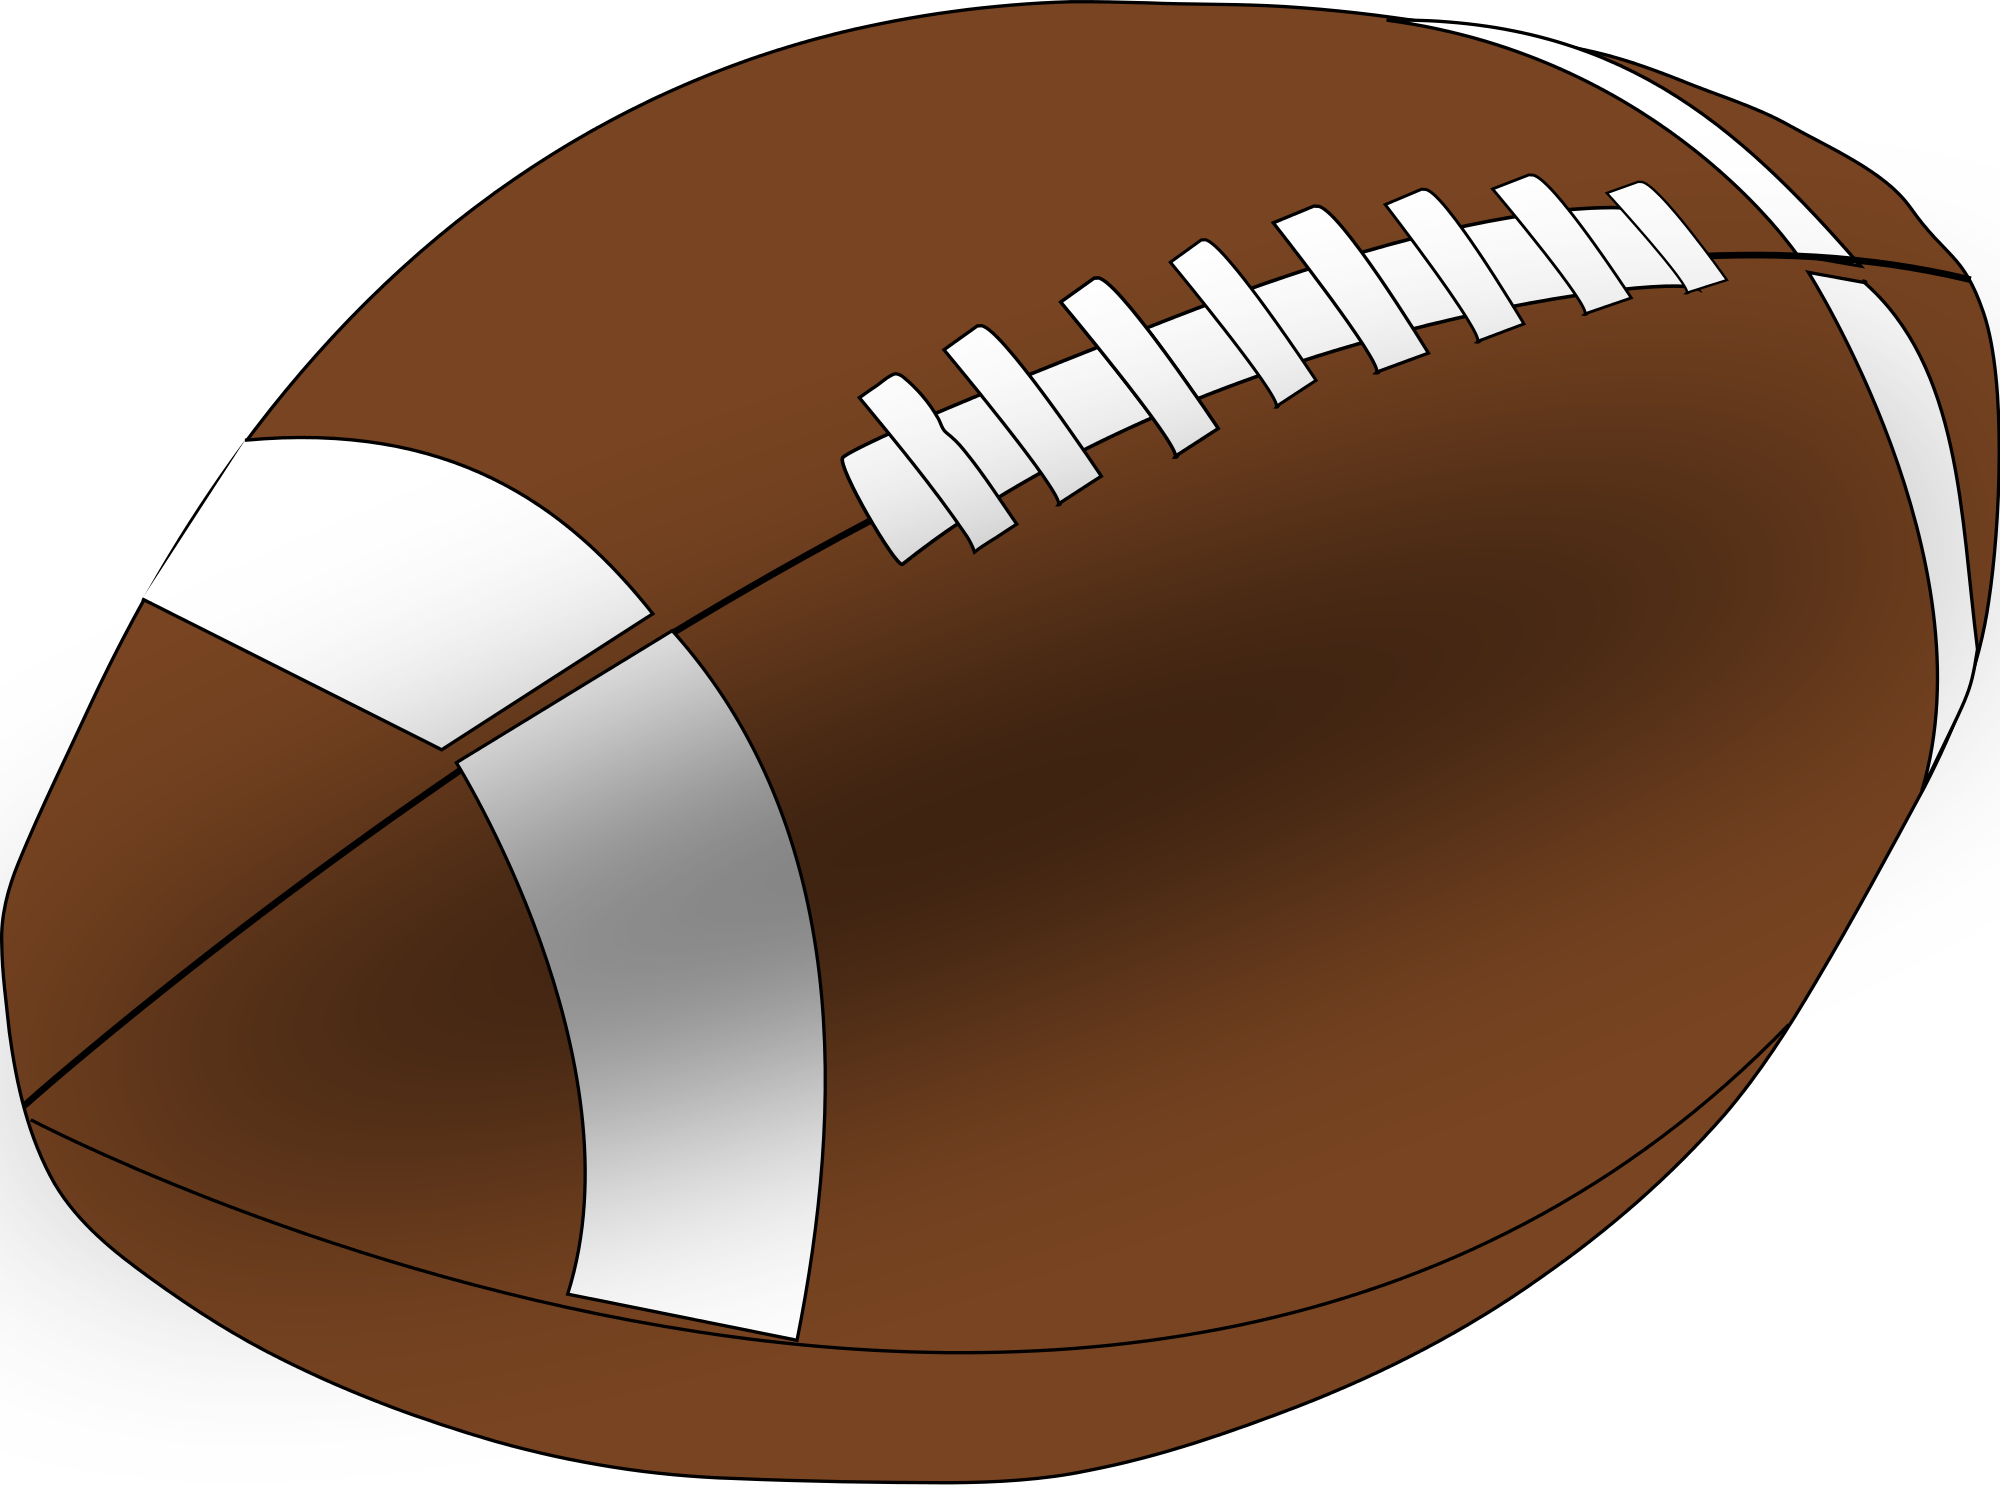 Gridiron wikipedia the used. Colors clipart football player